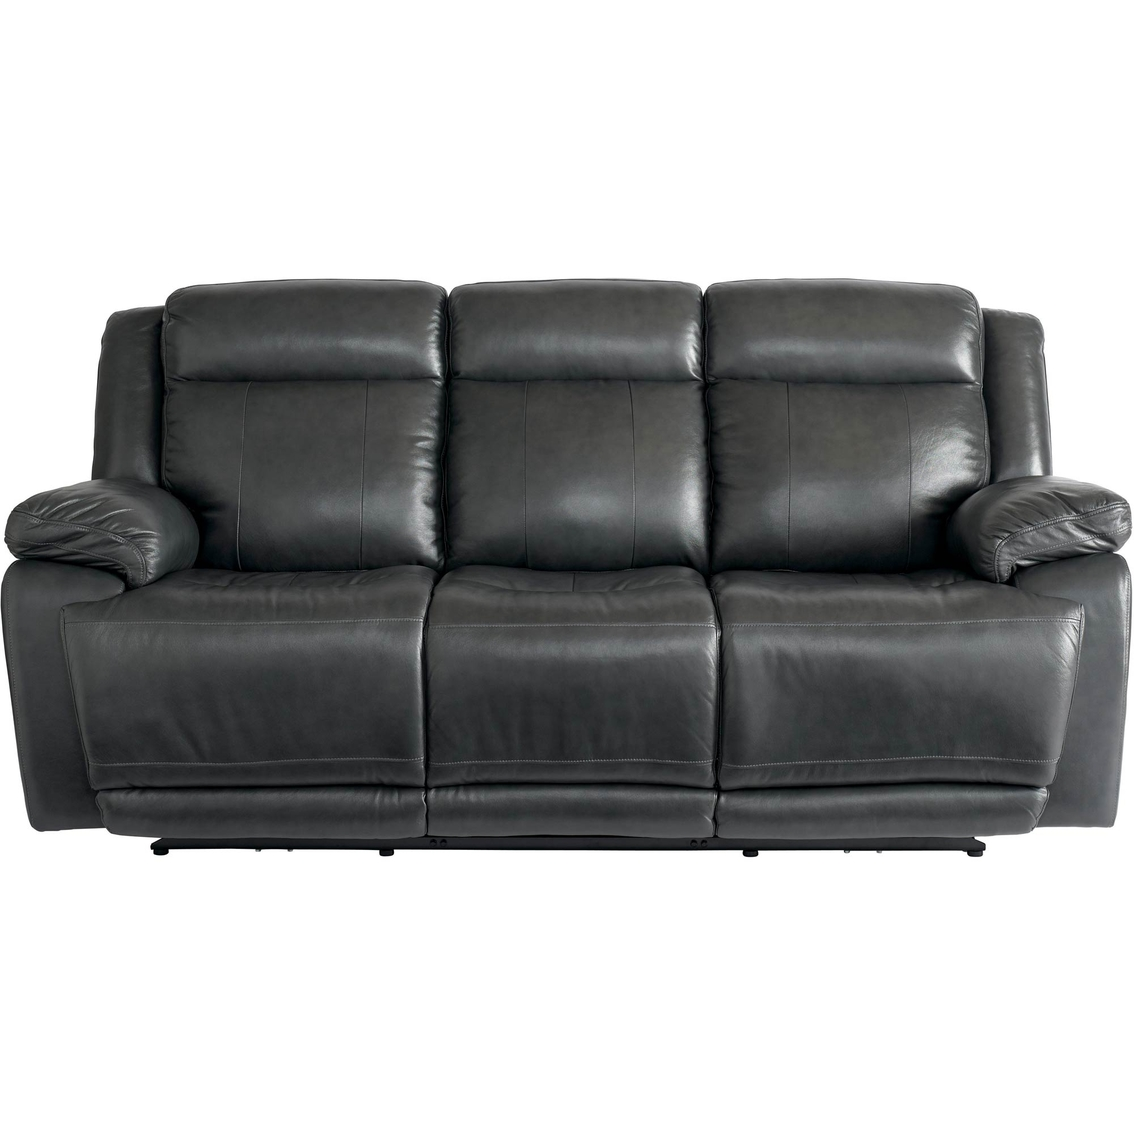 Bassett Club Level Evo Power Motion Sofa | Sofas & Couches | Home ...